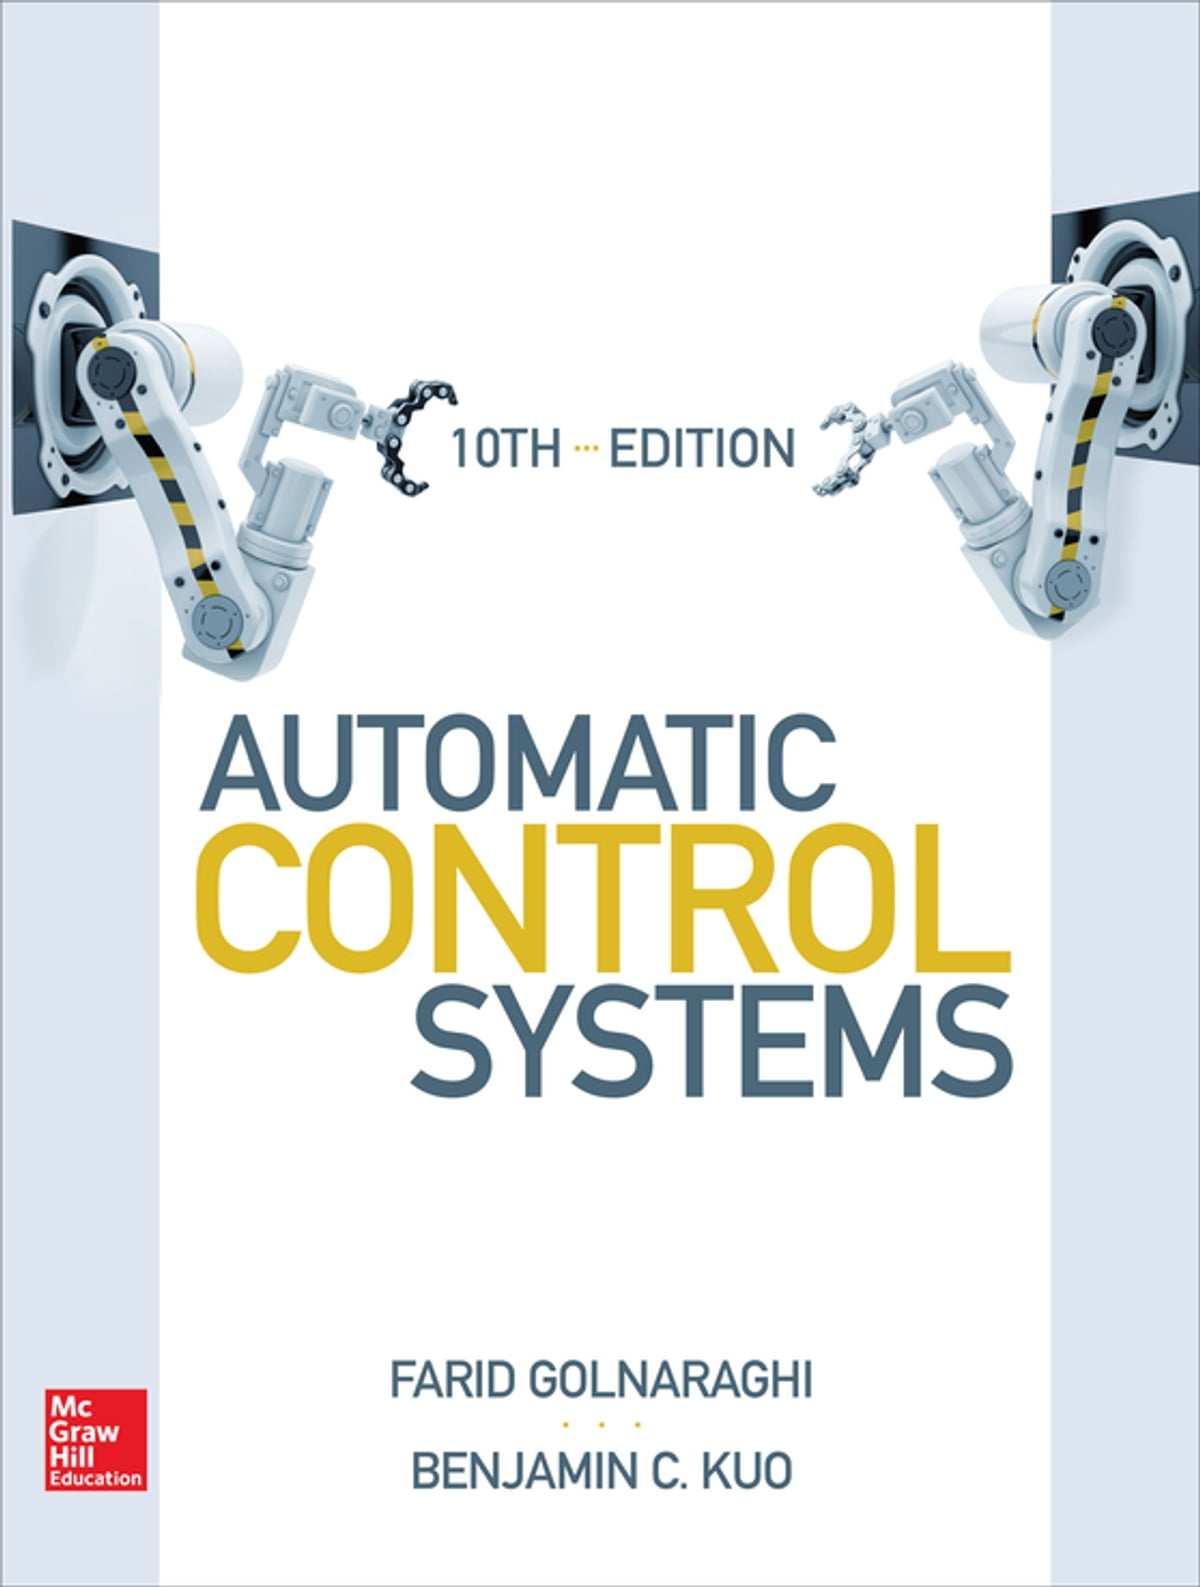 Marketing an introduction 10th edition ebook best deal choice image automatic control systems tenth edition ebook by farid golnaraghi automatic control systems tenth edition ebook by fandeluxe Choice Image